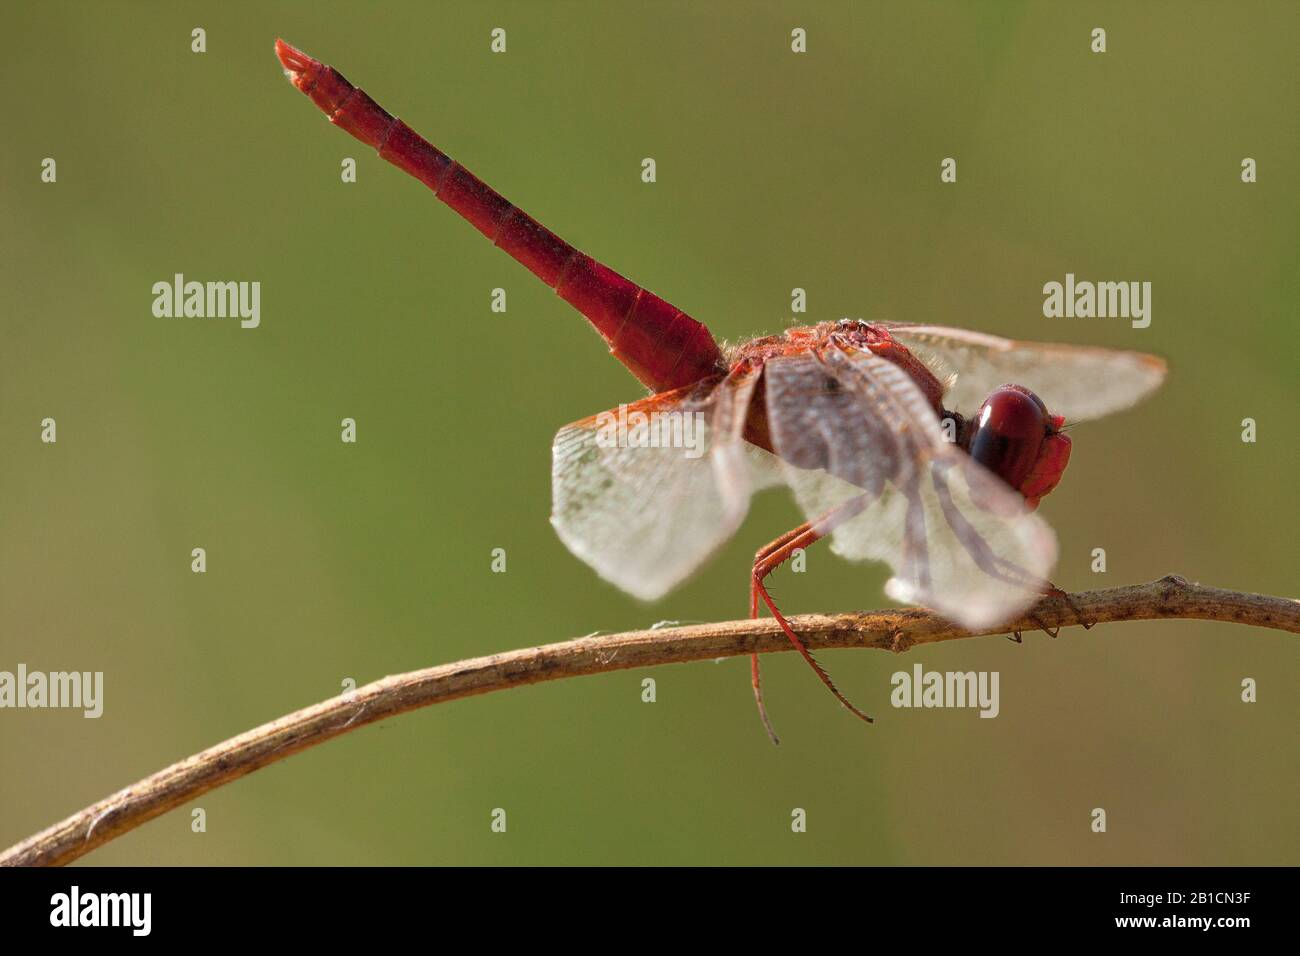 Broad Scarlet, Common Scarlet-darter, Scarlet Darter, Scarlet Dragonfly (Crocothemis erythraea, Croccothemis erythraea), male, Spain, Huelva Stock Photo